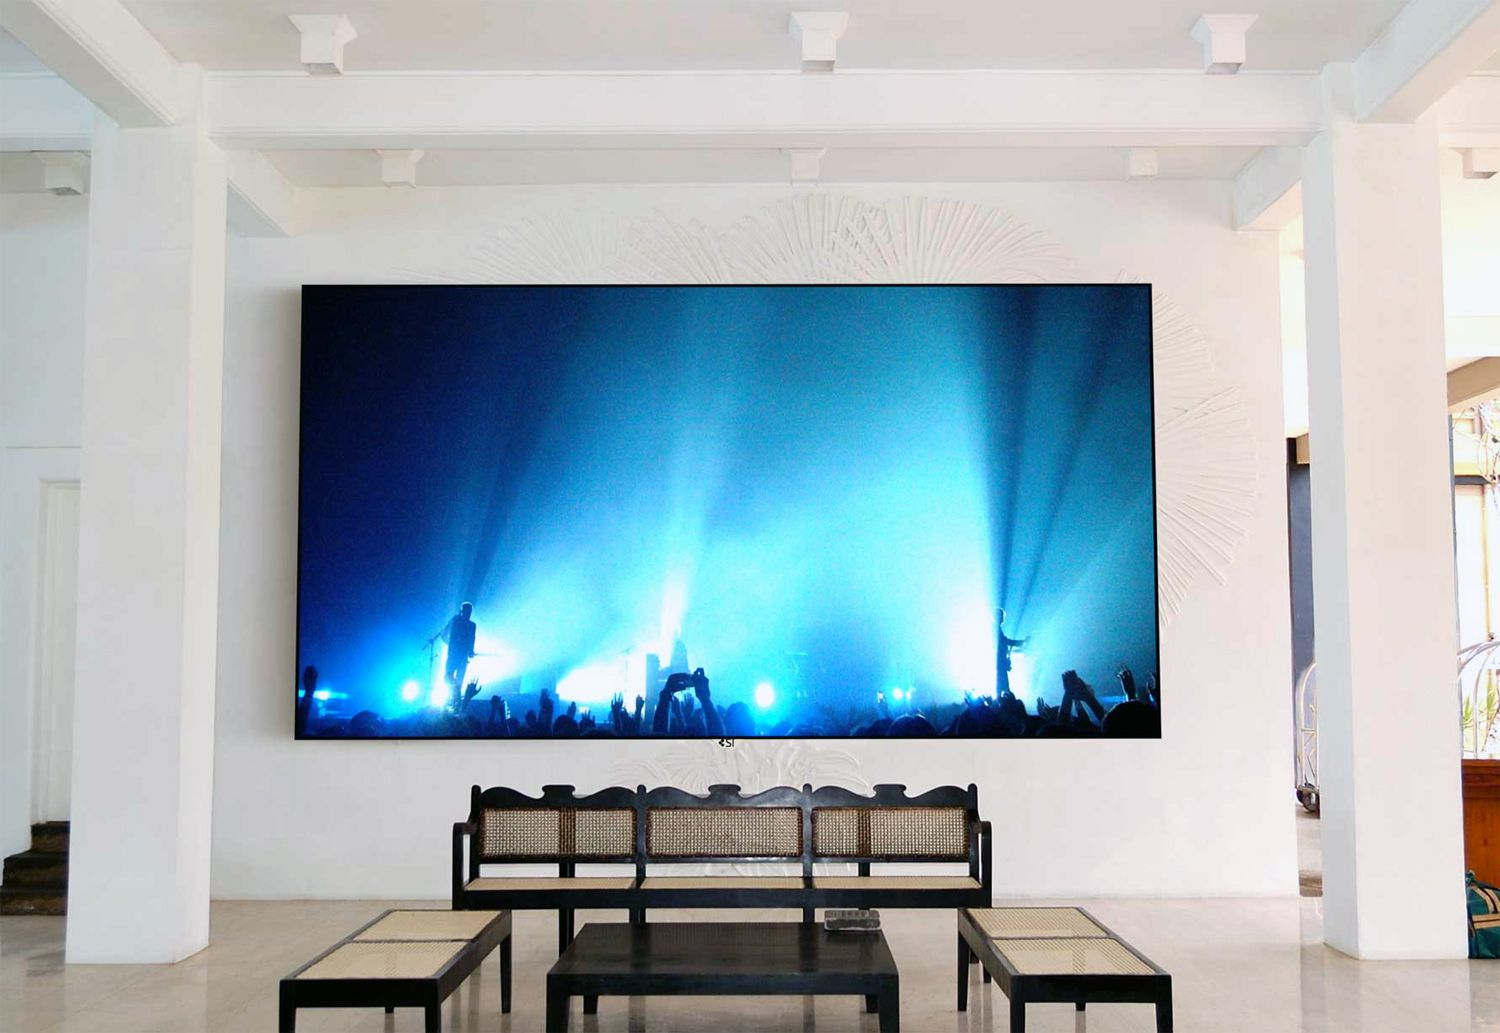 Before You Buy A Video Projection Screen